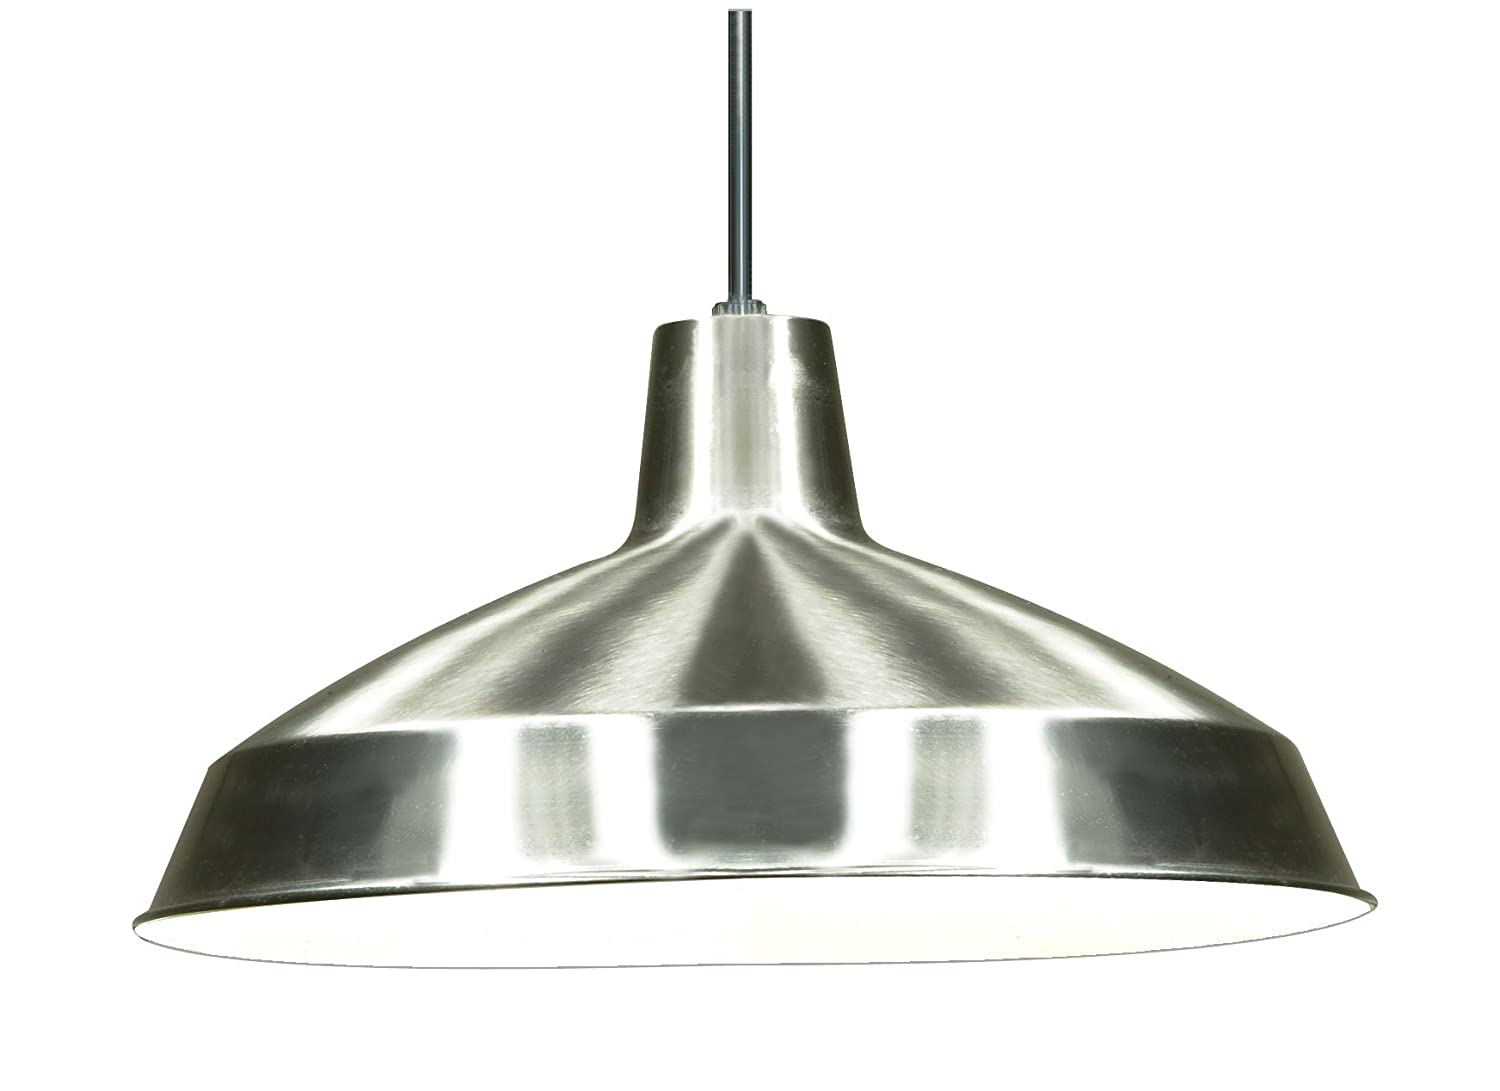 industrial style lighting fixtures home. Nuvo Lighting SF76/661 Warehouse Shade, Brushed-Nickel - Ceiling Pendant Fixtures Amazon.com Industrial Style Home I